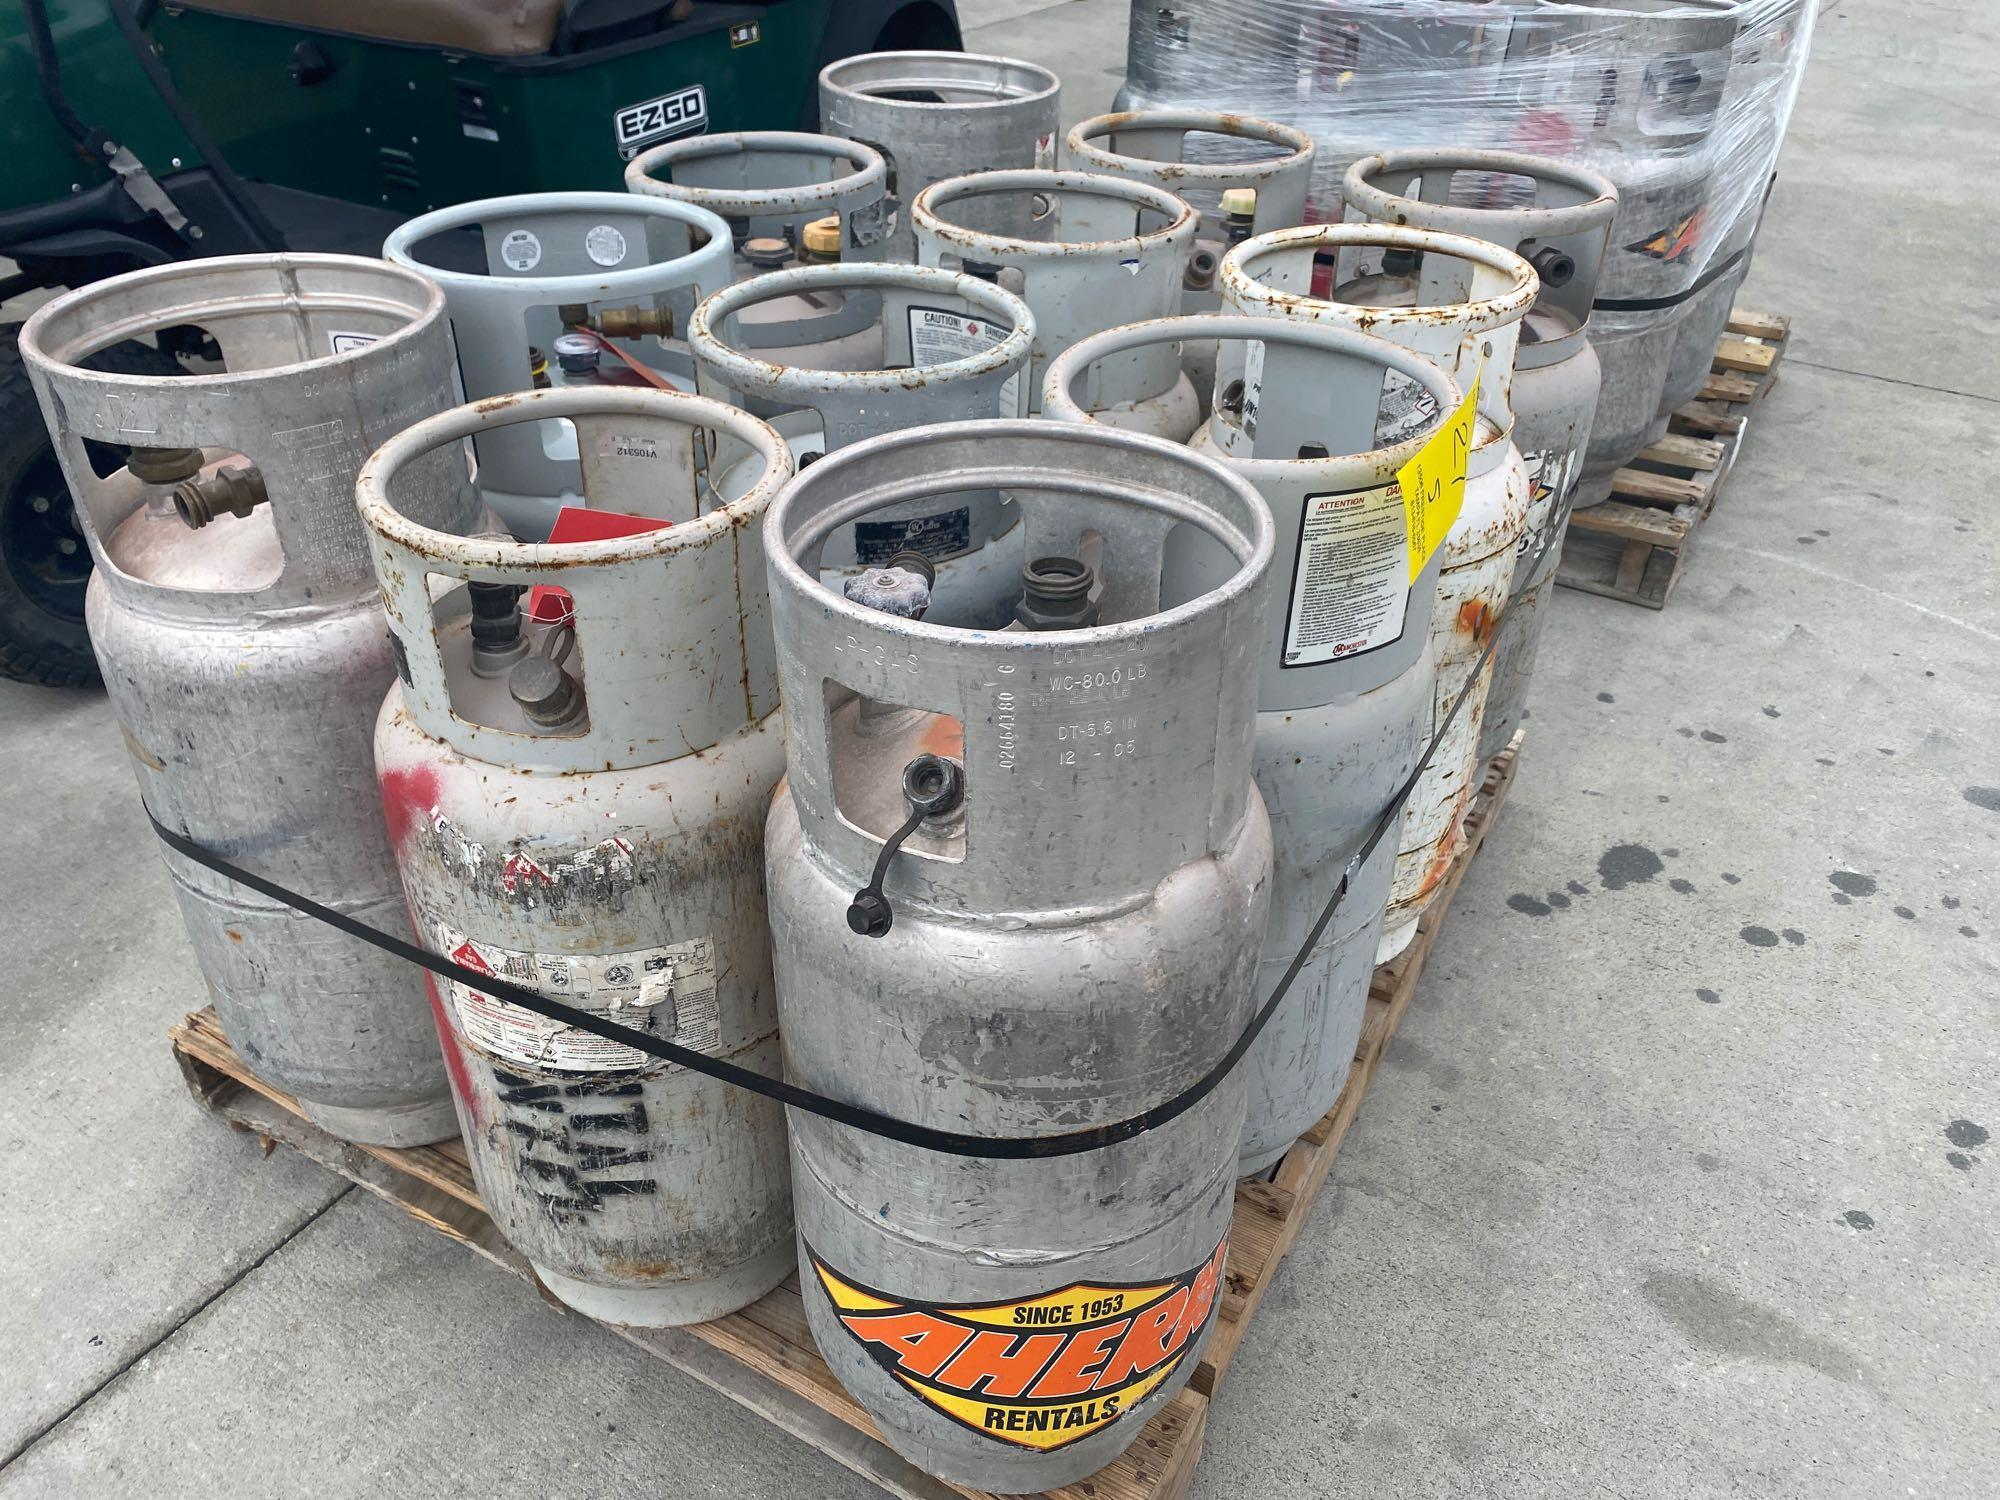 PALLET OF PROPANE TANKS, ALUMINUM AND STEEL